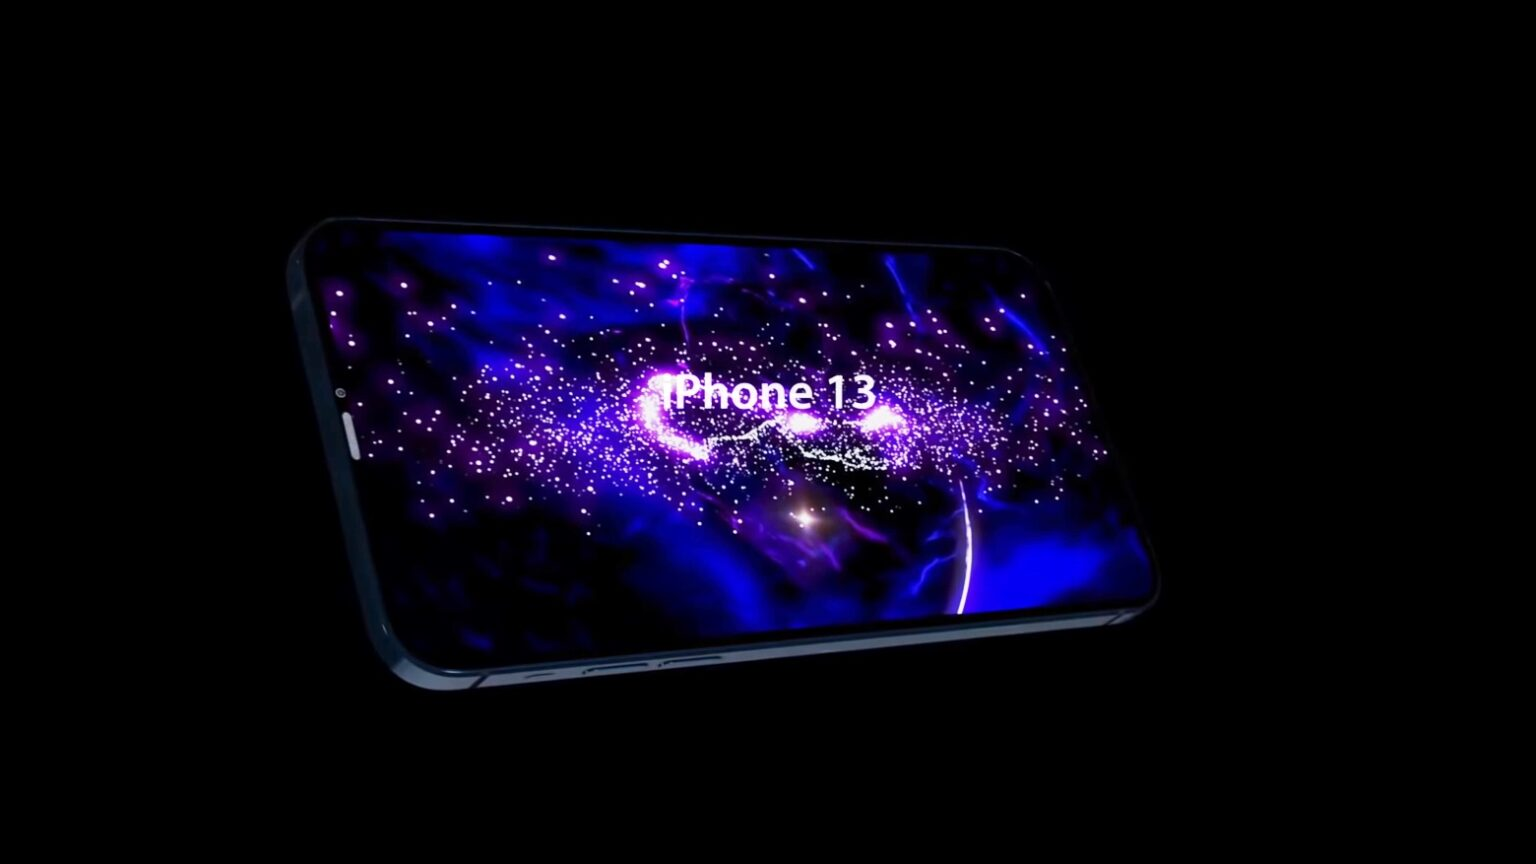 iPhone 13 might sport a 120Hz display.